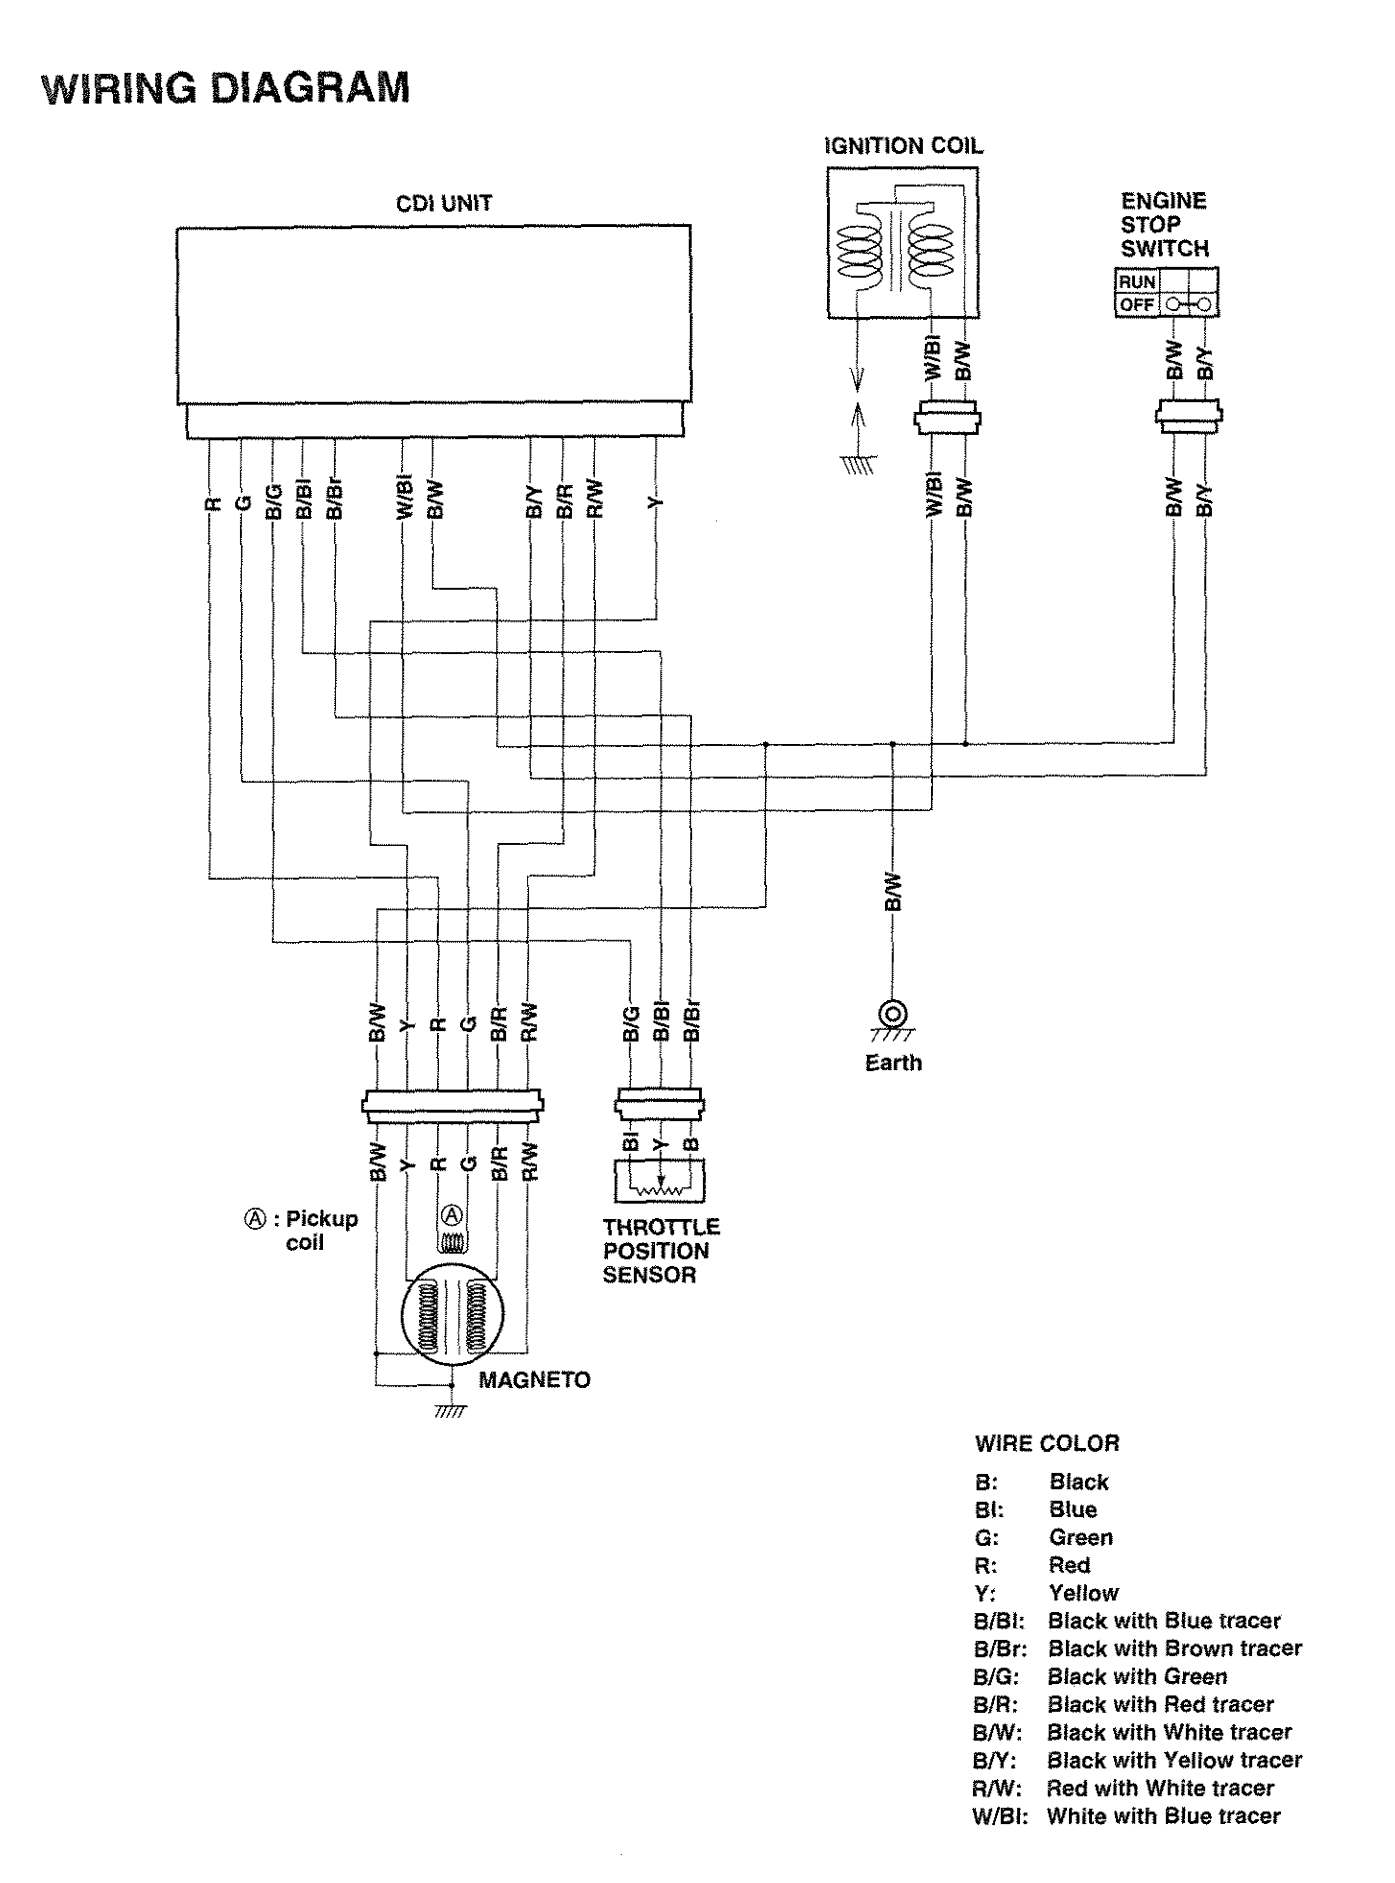 [DIAGRAM] 6 Volt Positive Ground Wiring Diagram